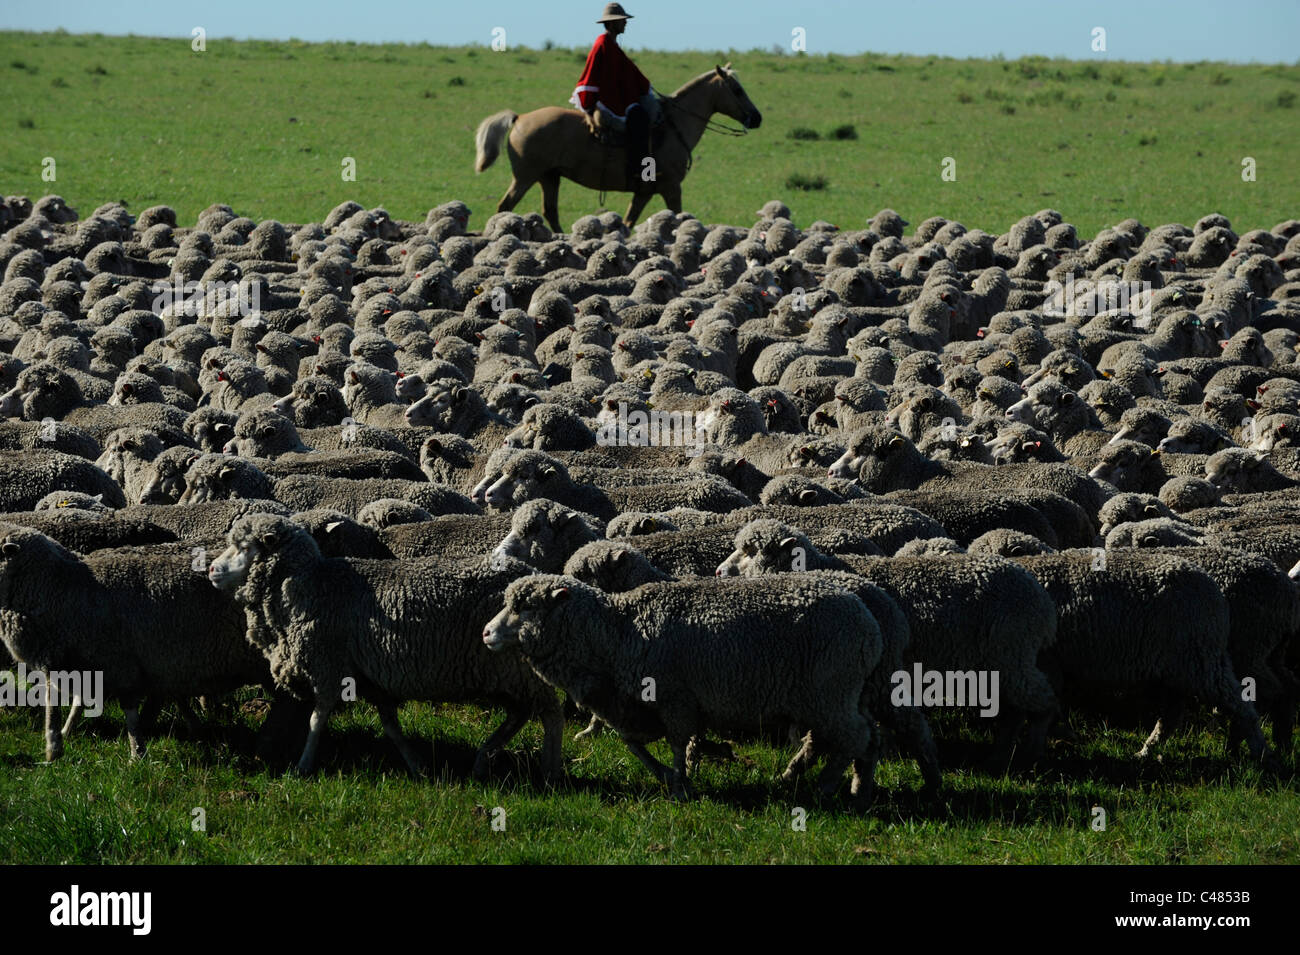 URUGUAY agriculture and livestock , Gauchos with horse and Merino sheeps cattle on grasslands - Stock Image